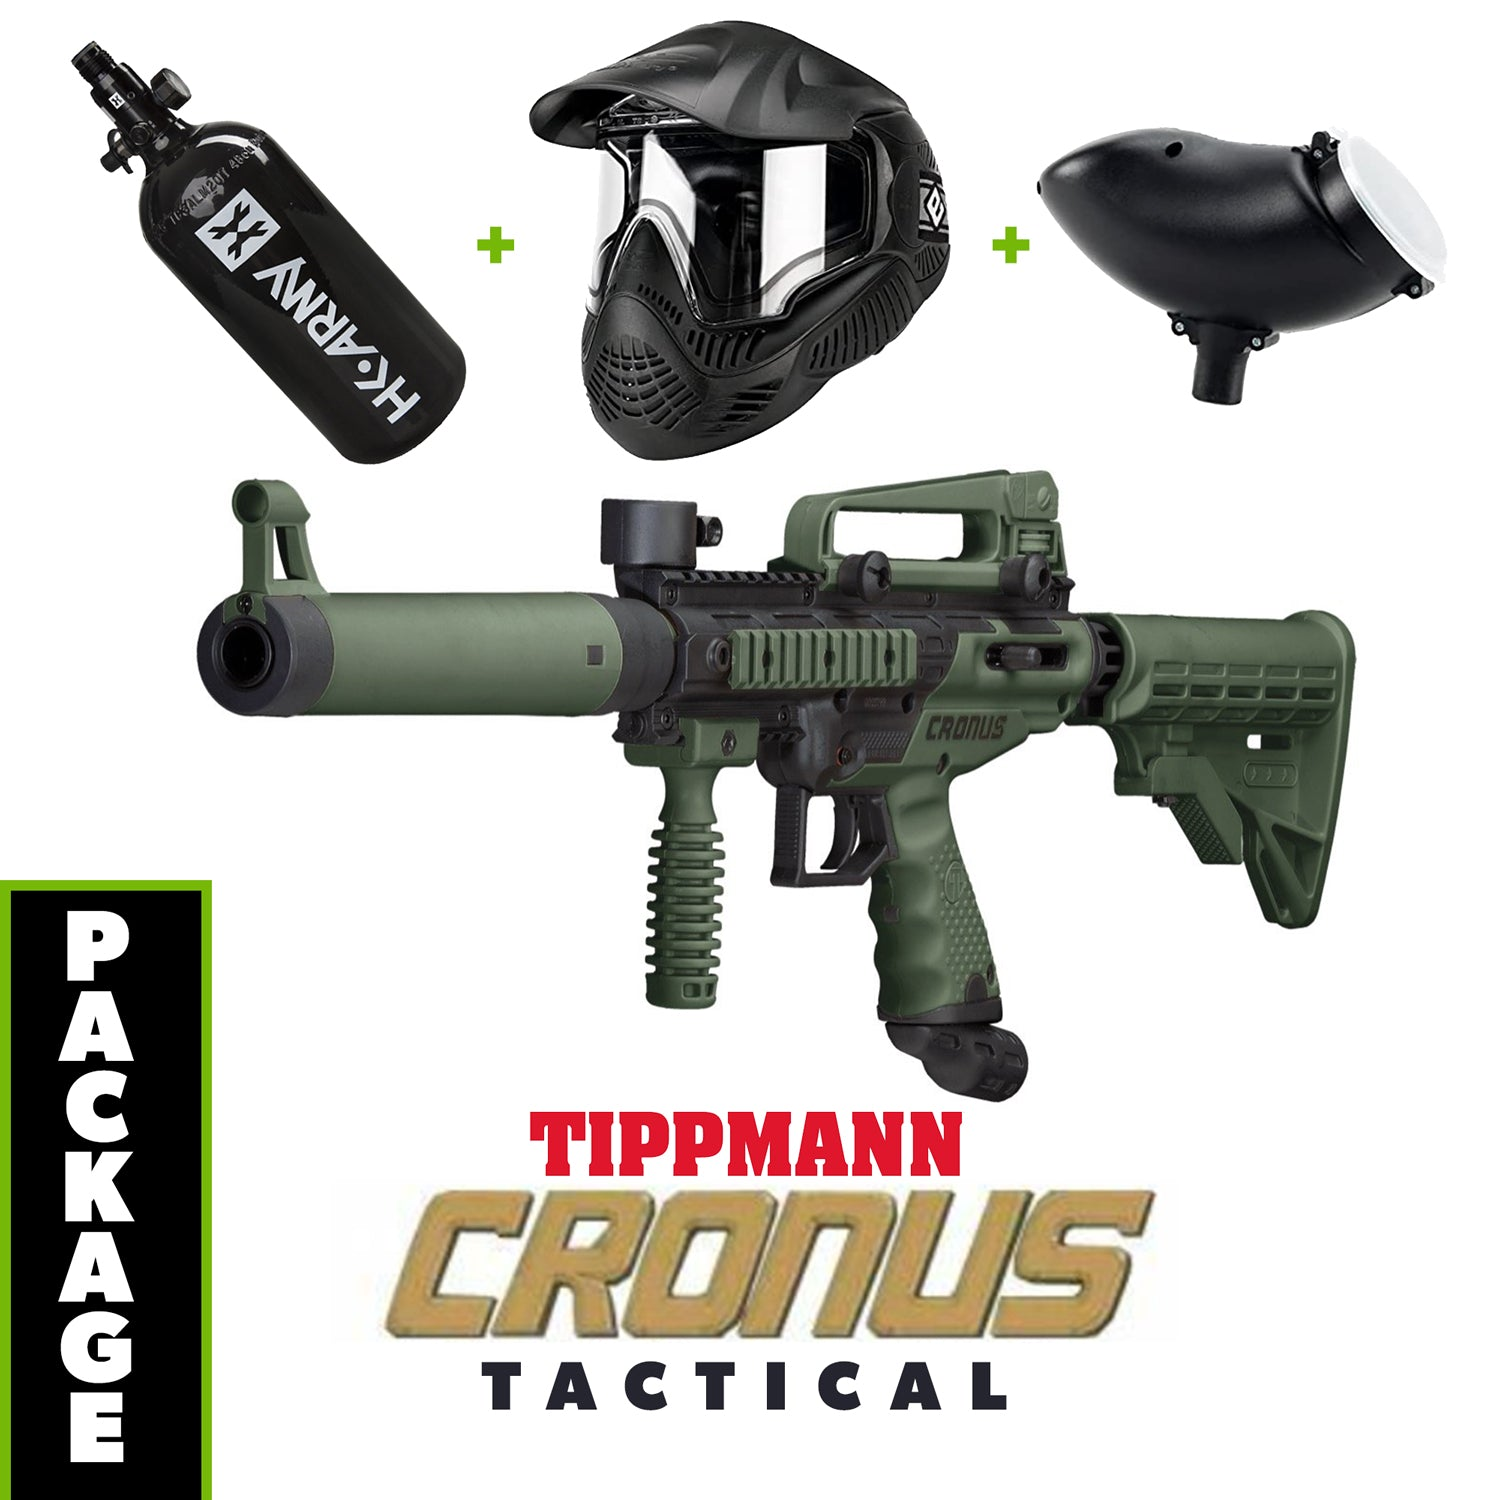 Tippmann Cronus Tactical - Olive / Black